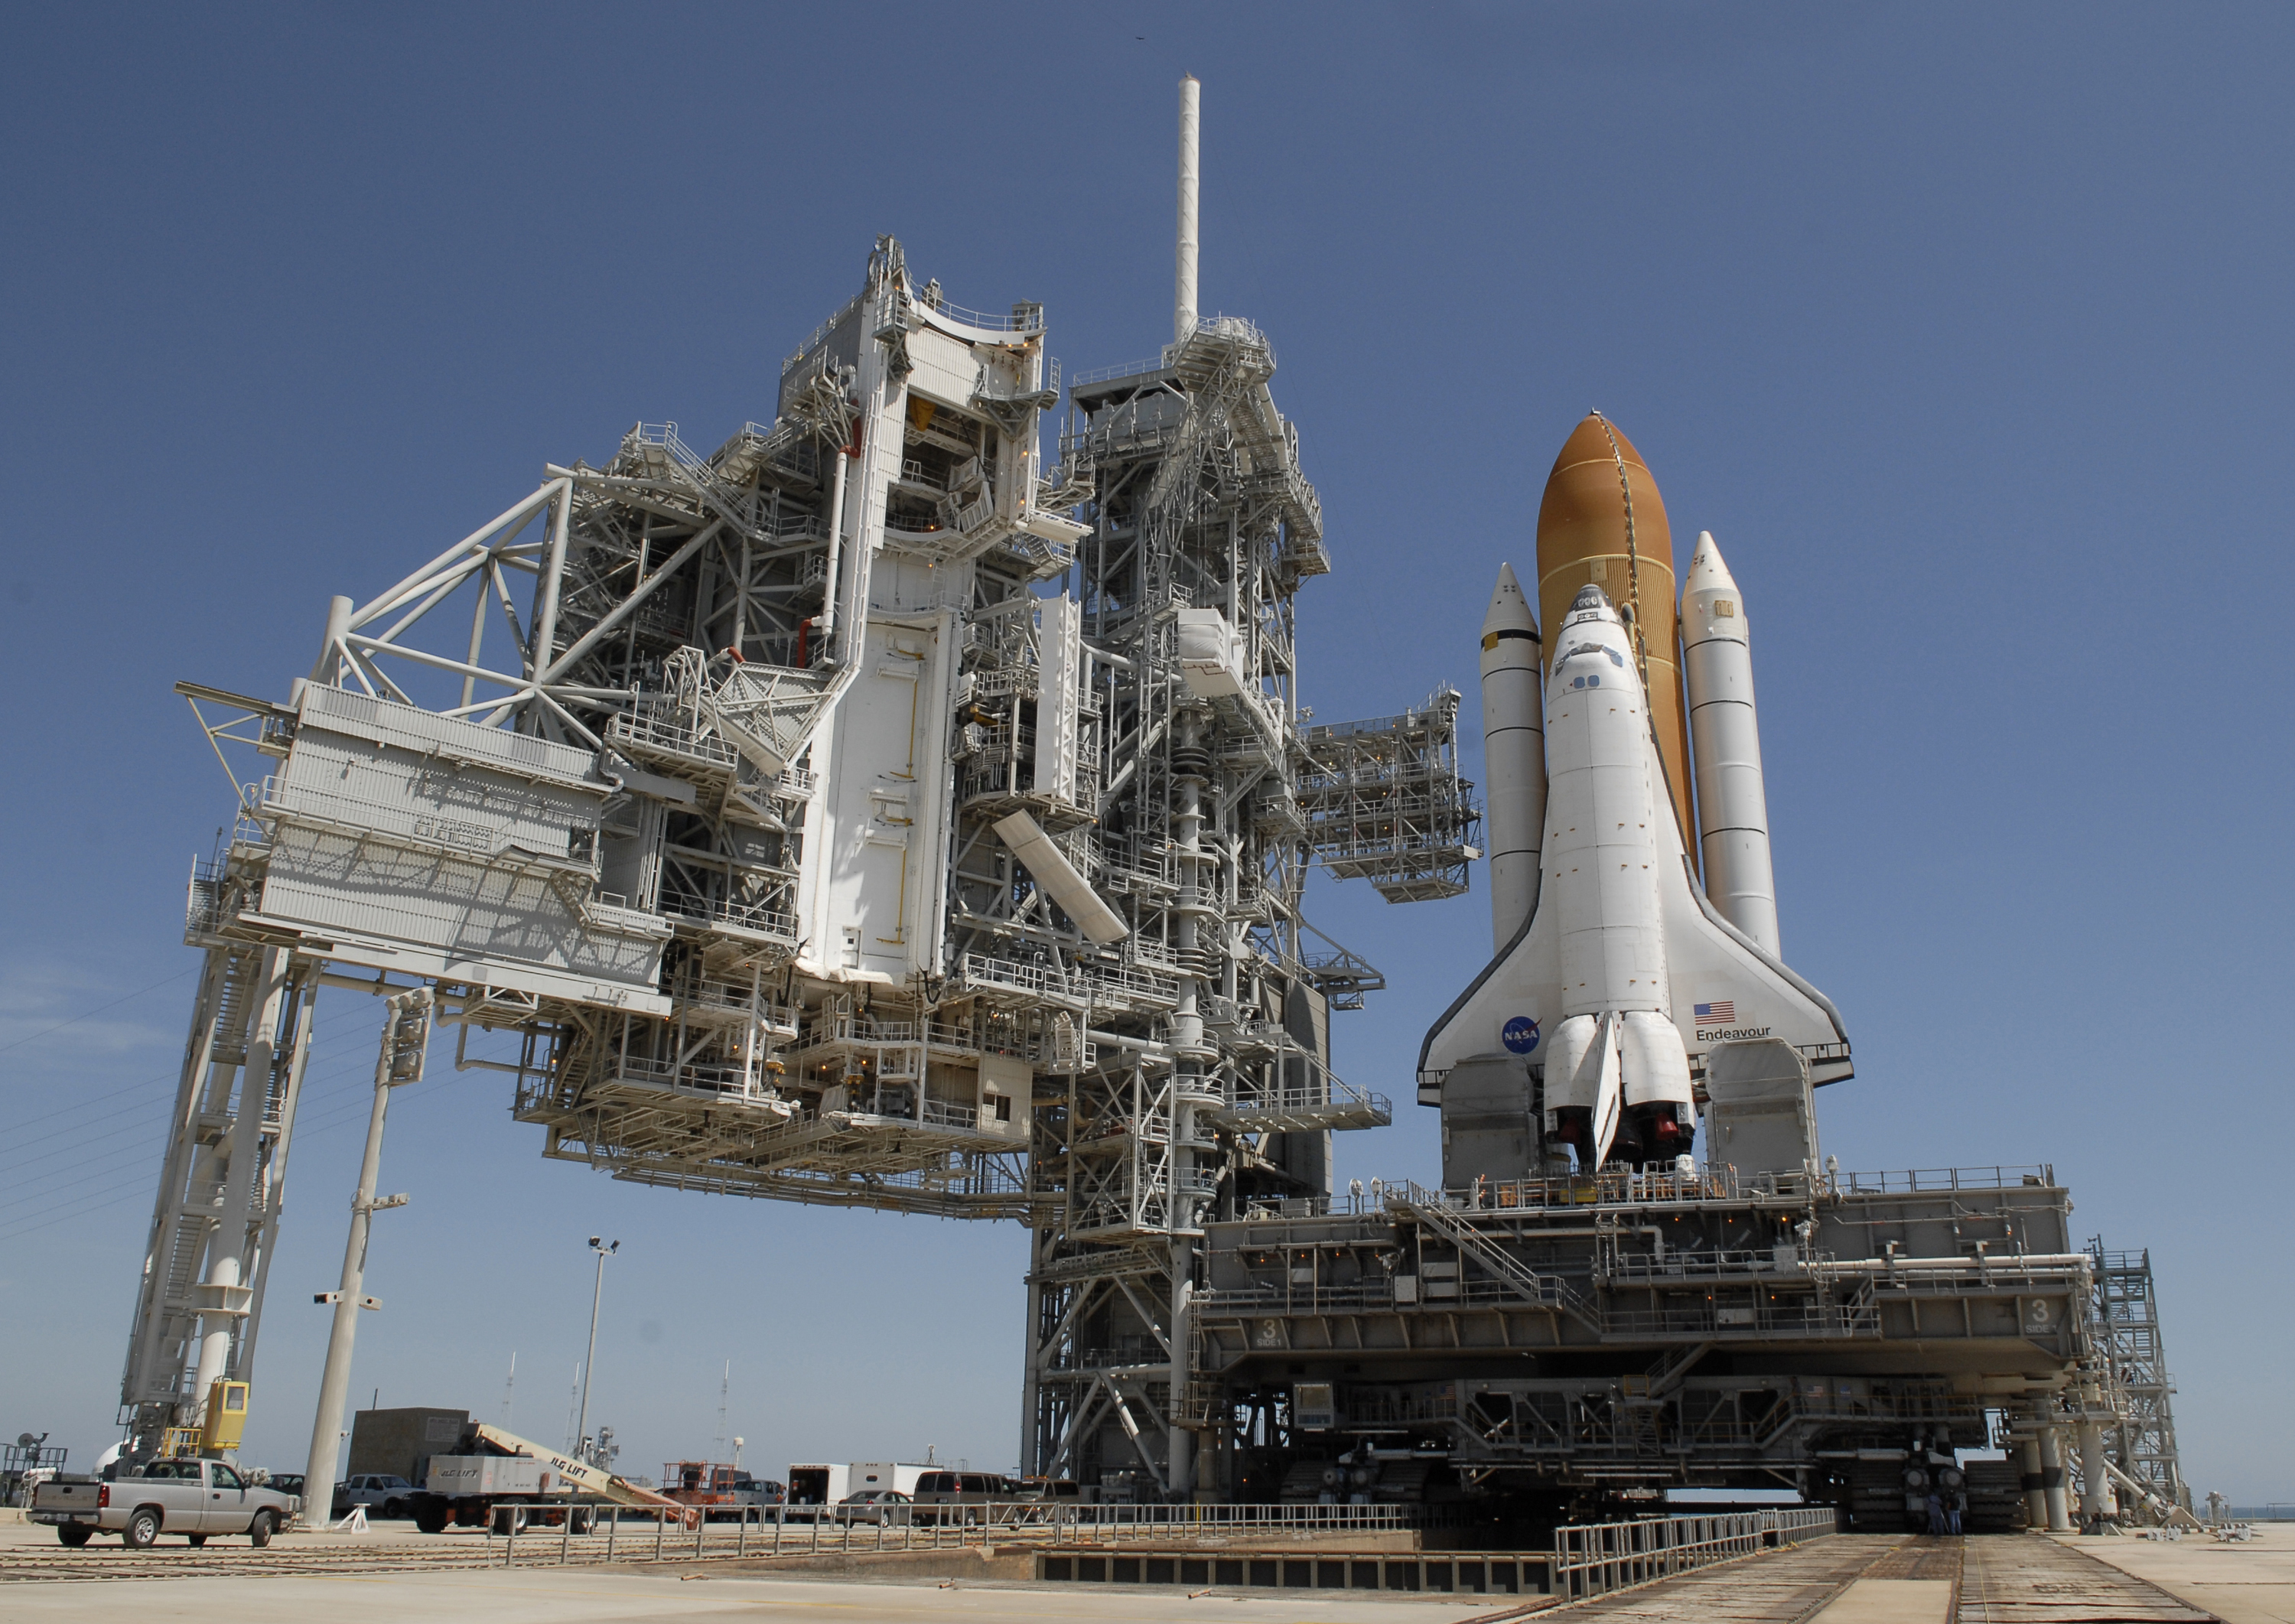 File:STS-127 Endeavour on Launch Pad 39A.jpg - Wikimedia ...